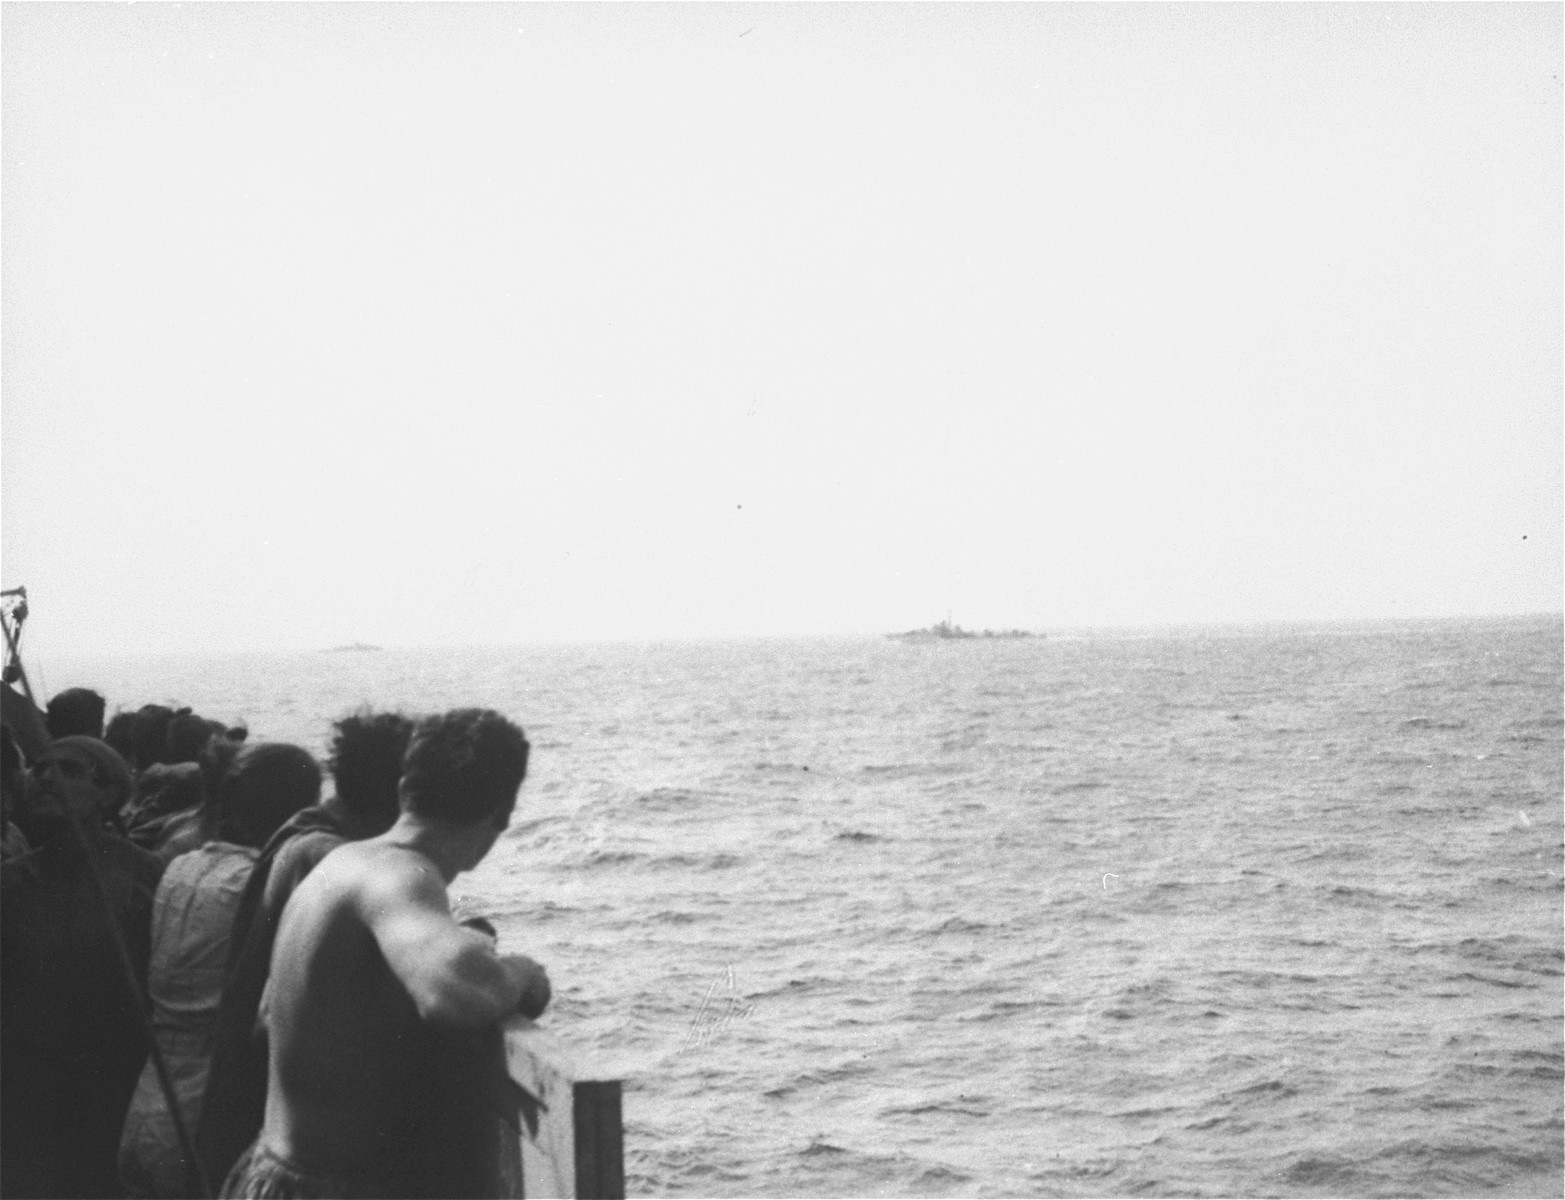 Passengers aboard the Exodus 1947 view the two British warships that have been dispatched to prevent their immigration to Palestine.